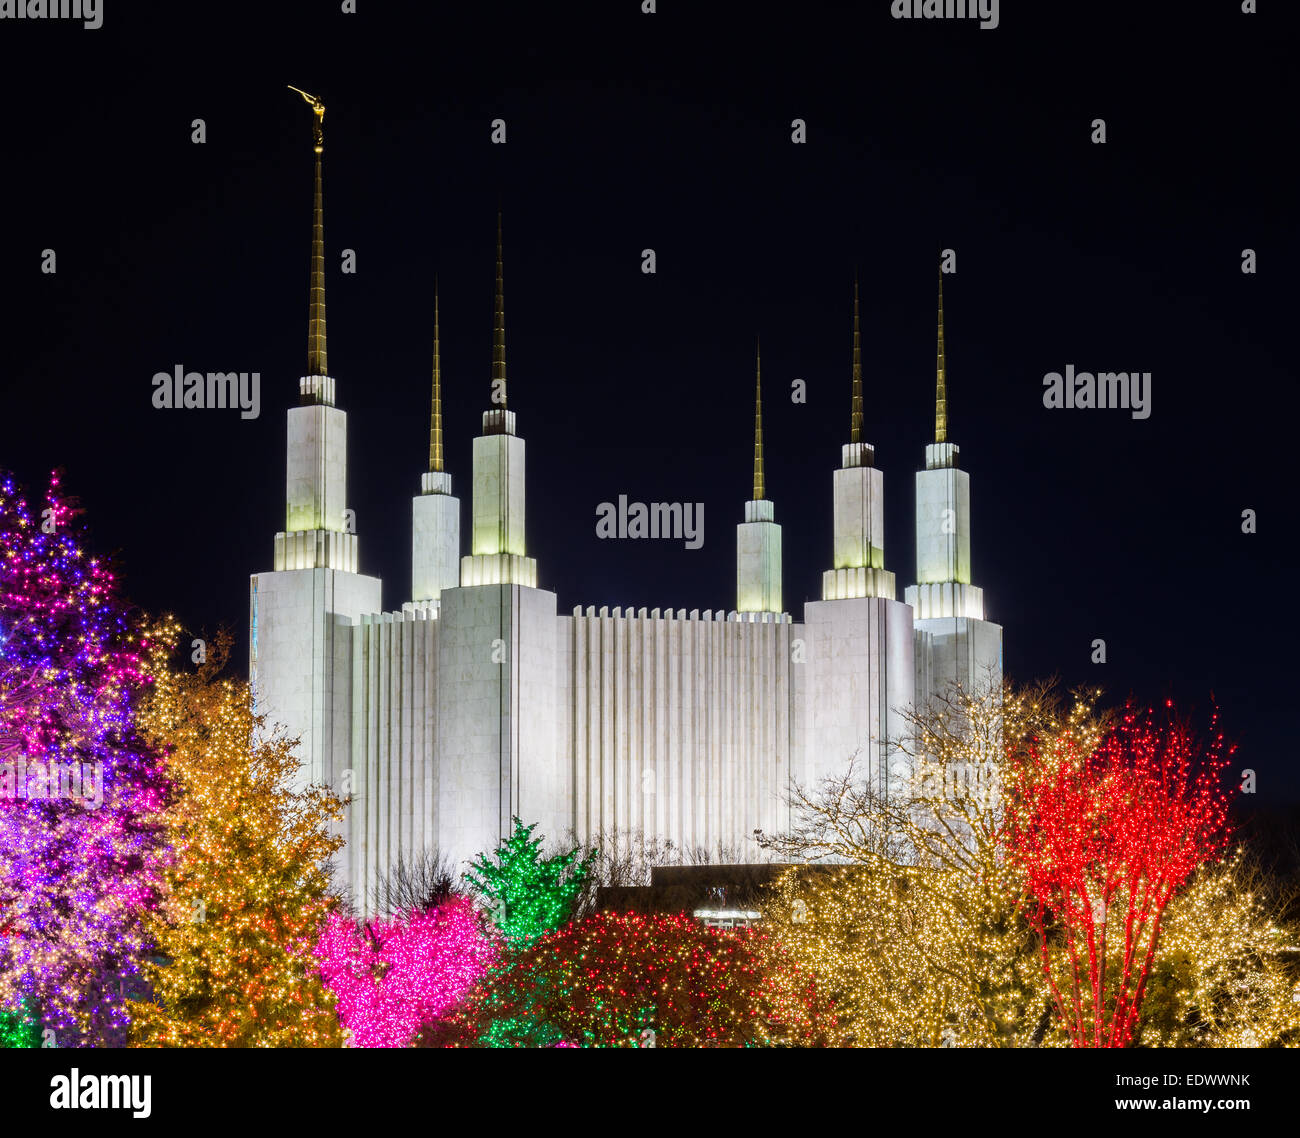 Christmas Lights Washington Dc Temple Stock Photos & Christmas ...